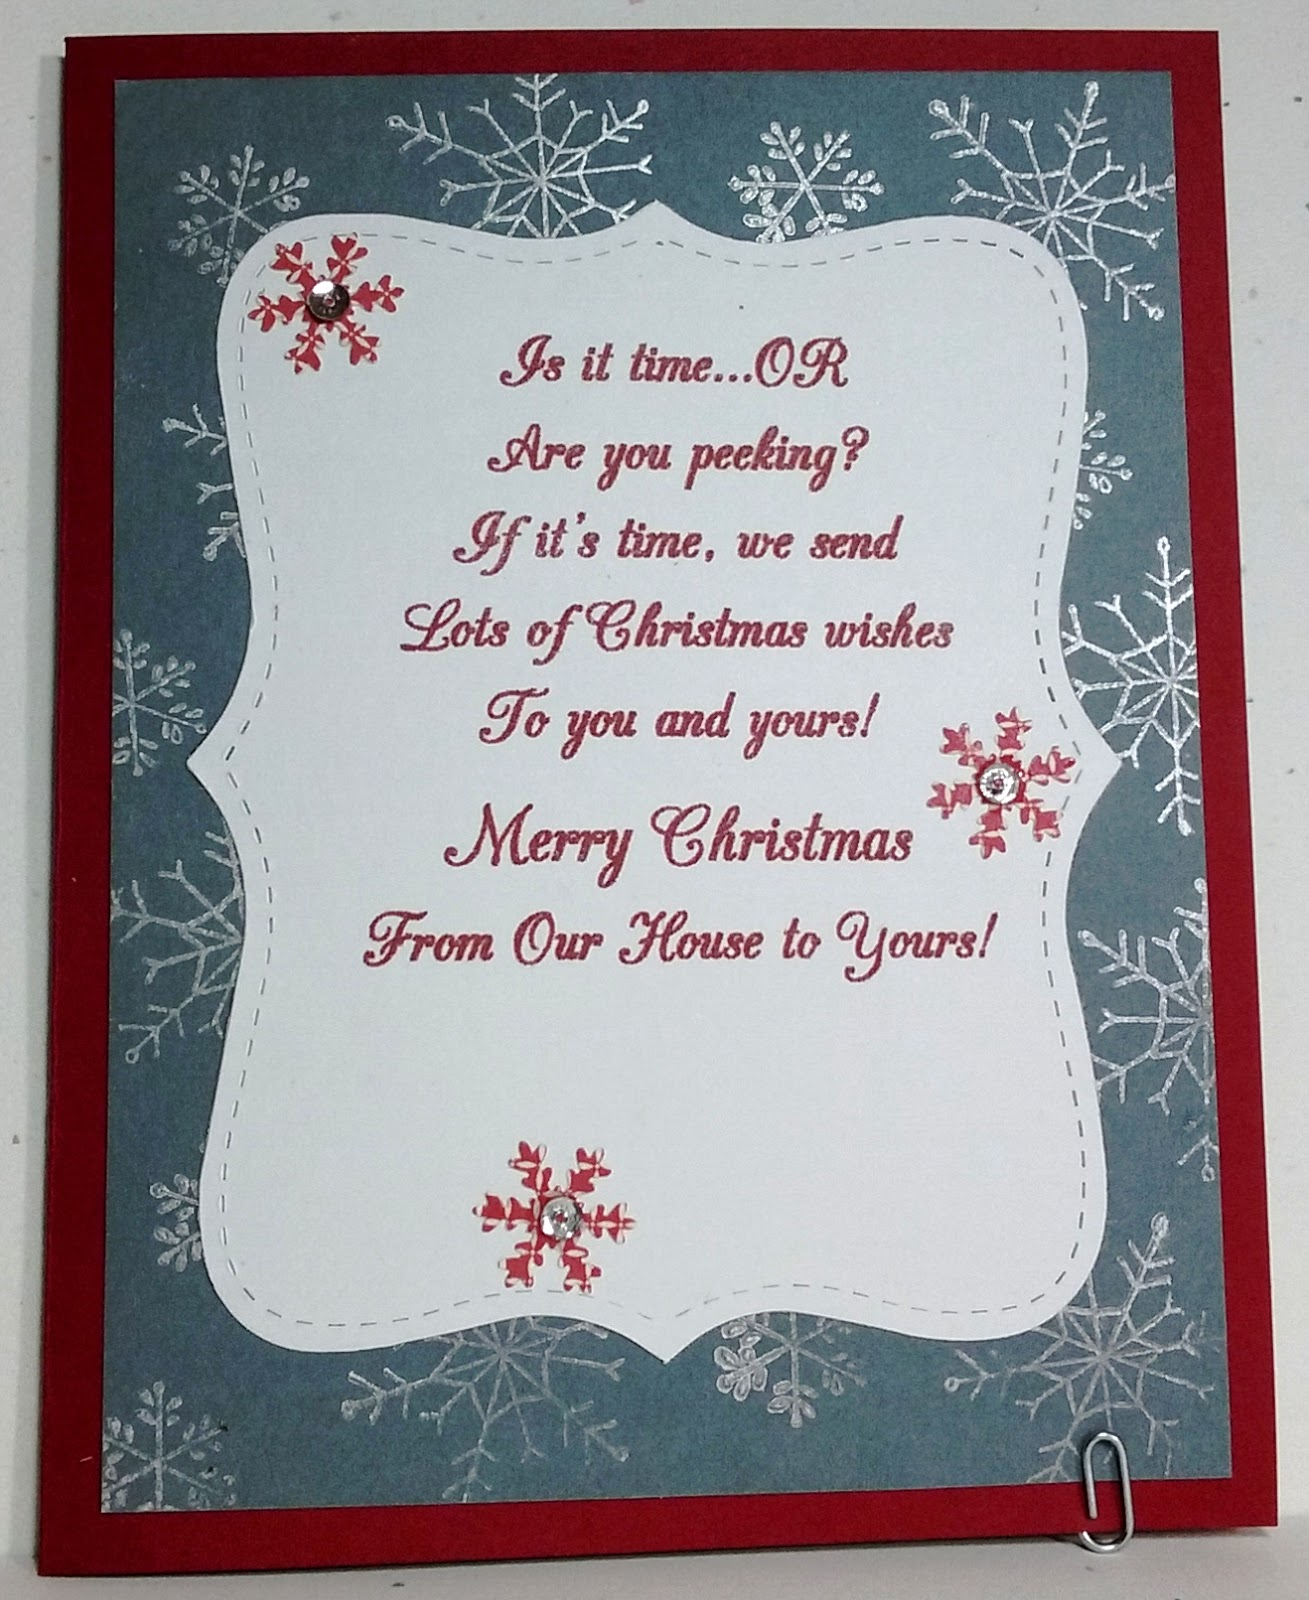 Chatterbox Creations: More Christmas Tags to Cards Conversions